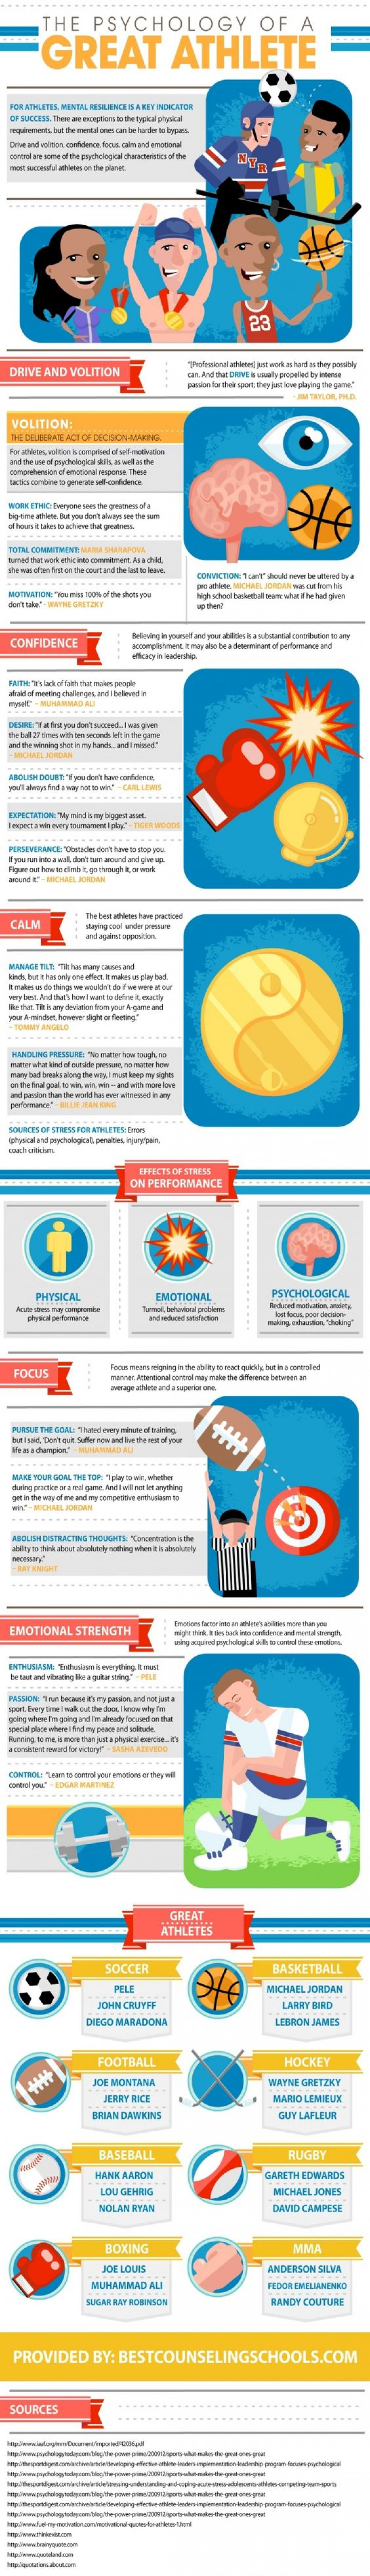 Benefits Of Sports Psychology For Athletes Infographic